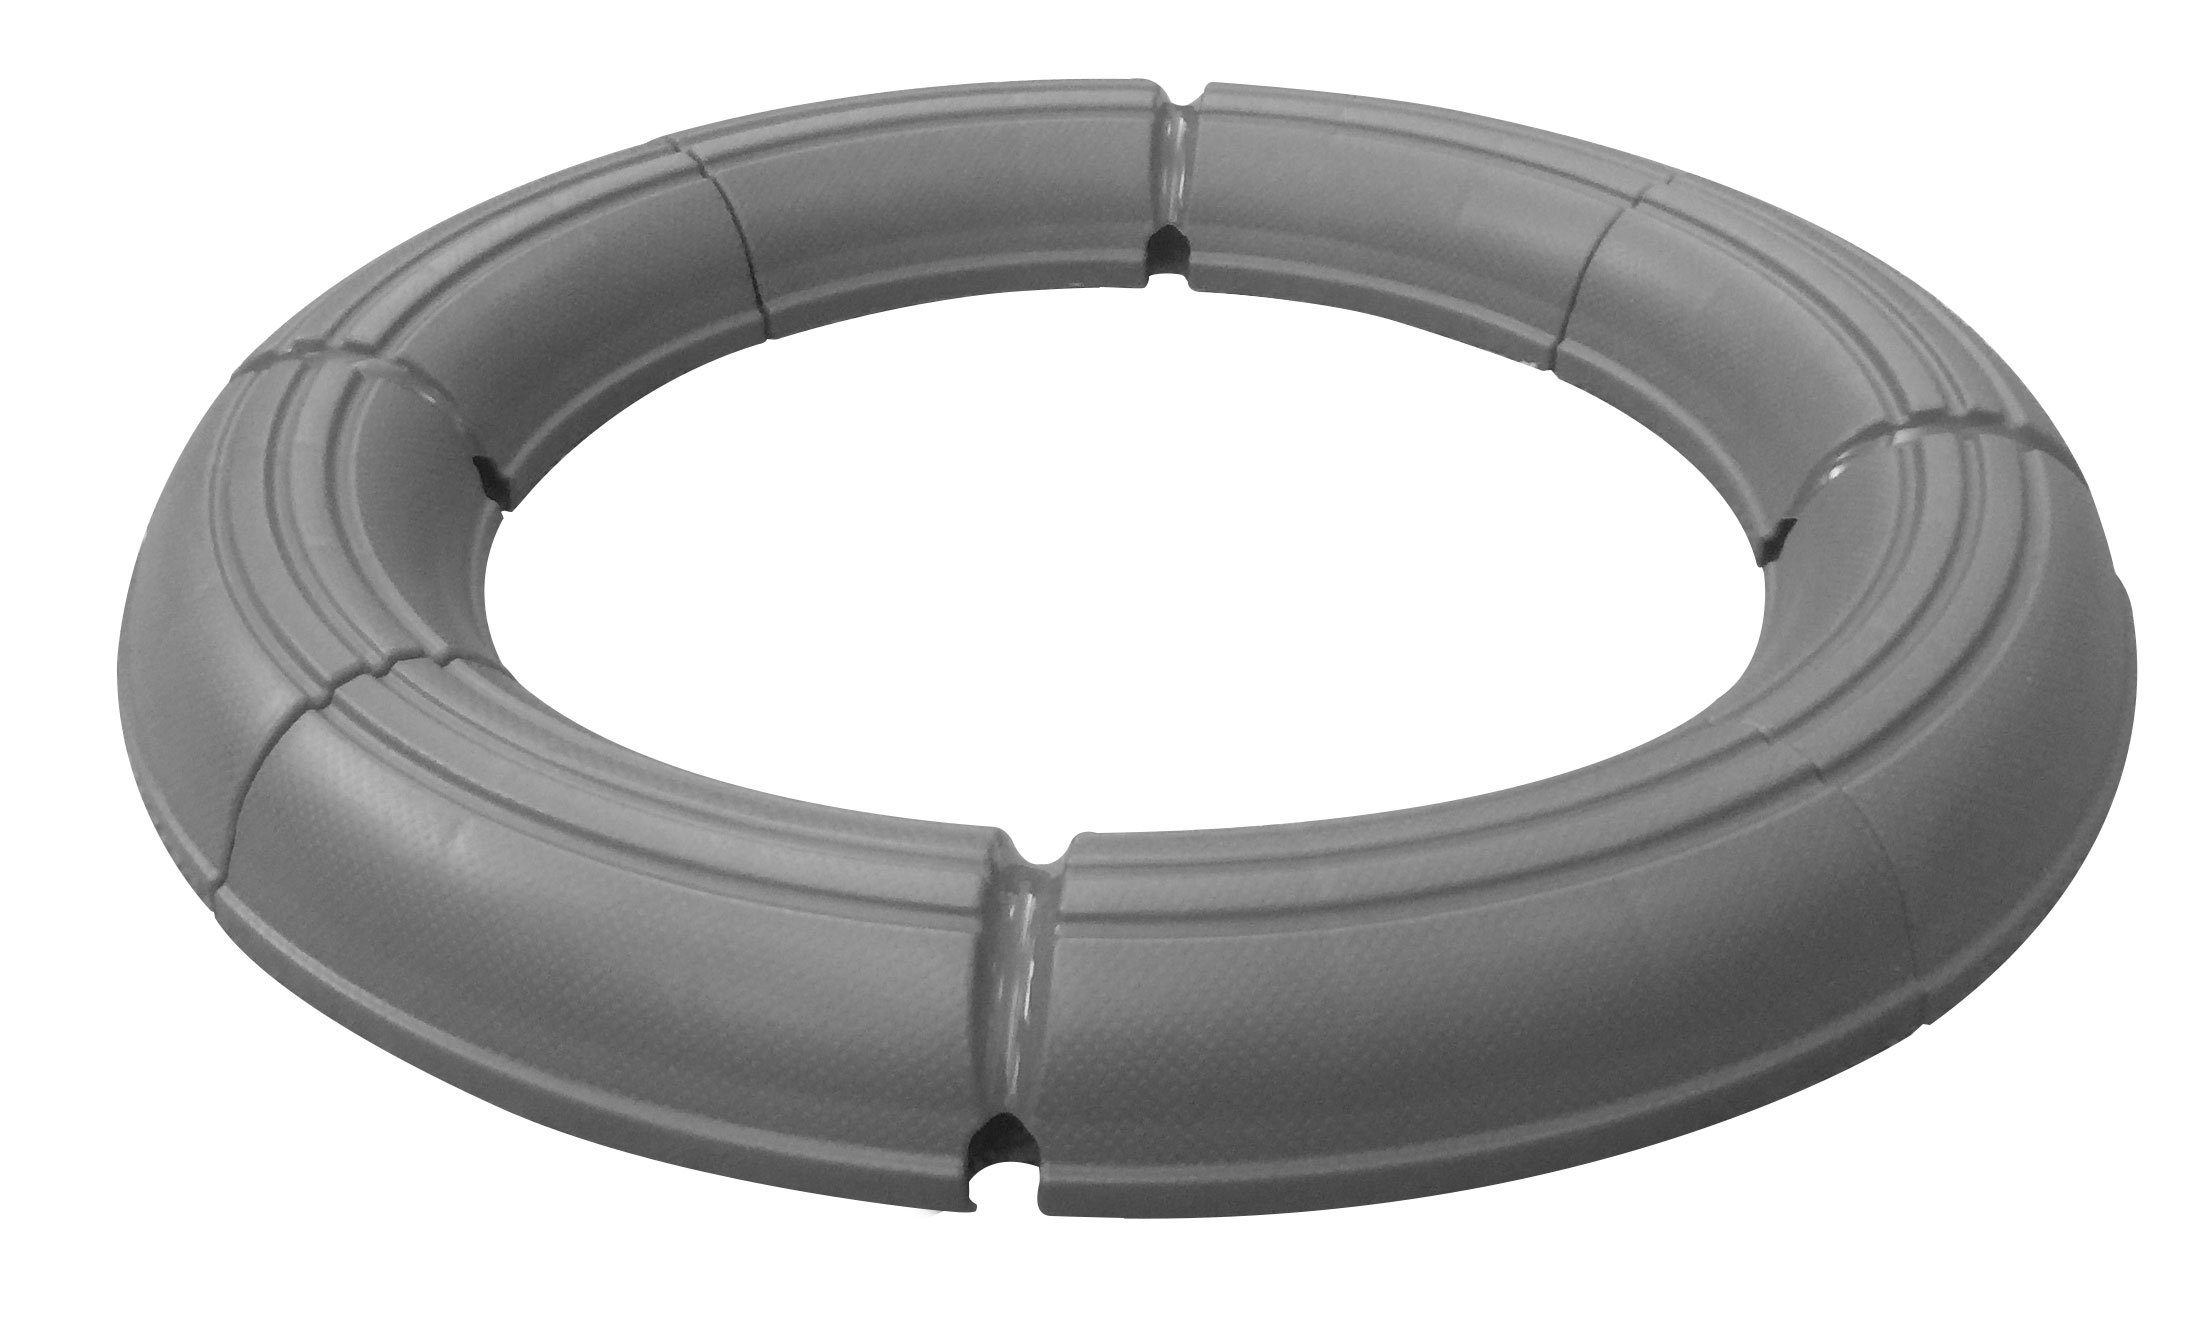 Gaiam Balance Ball Stability Ring, Grey